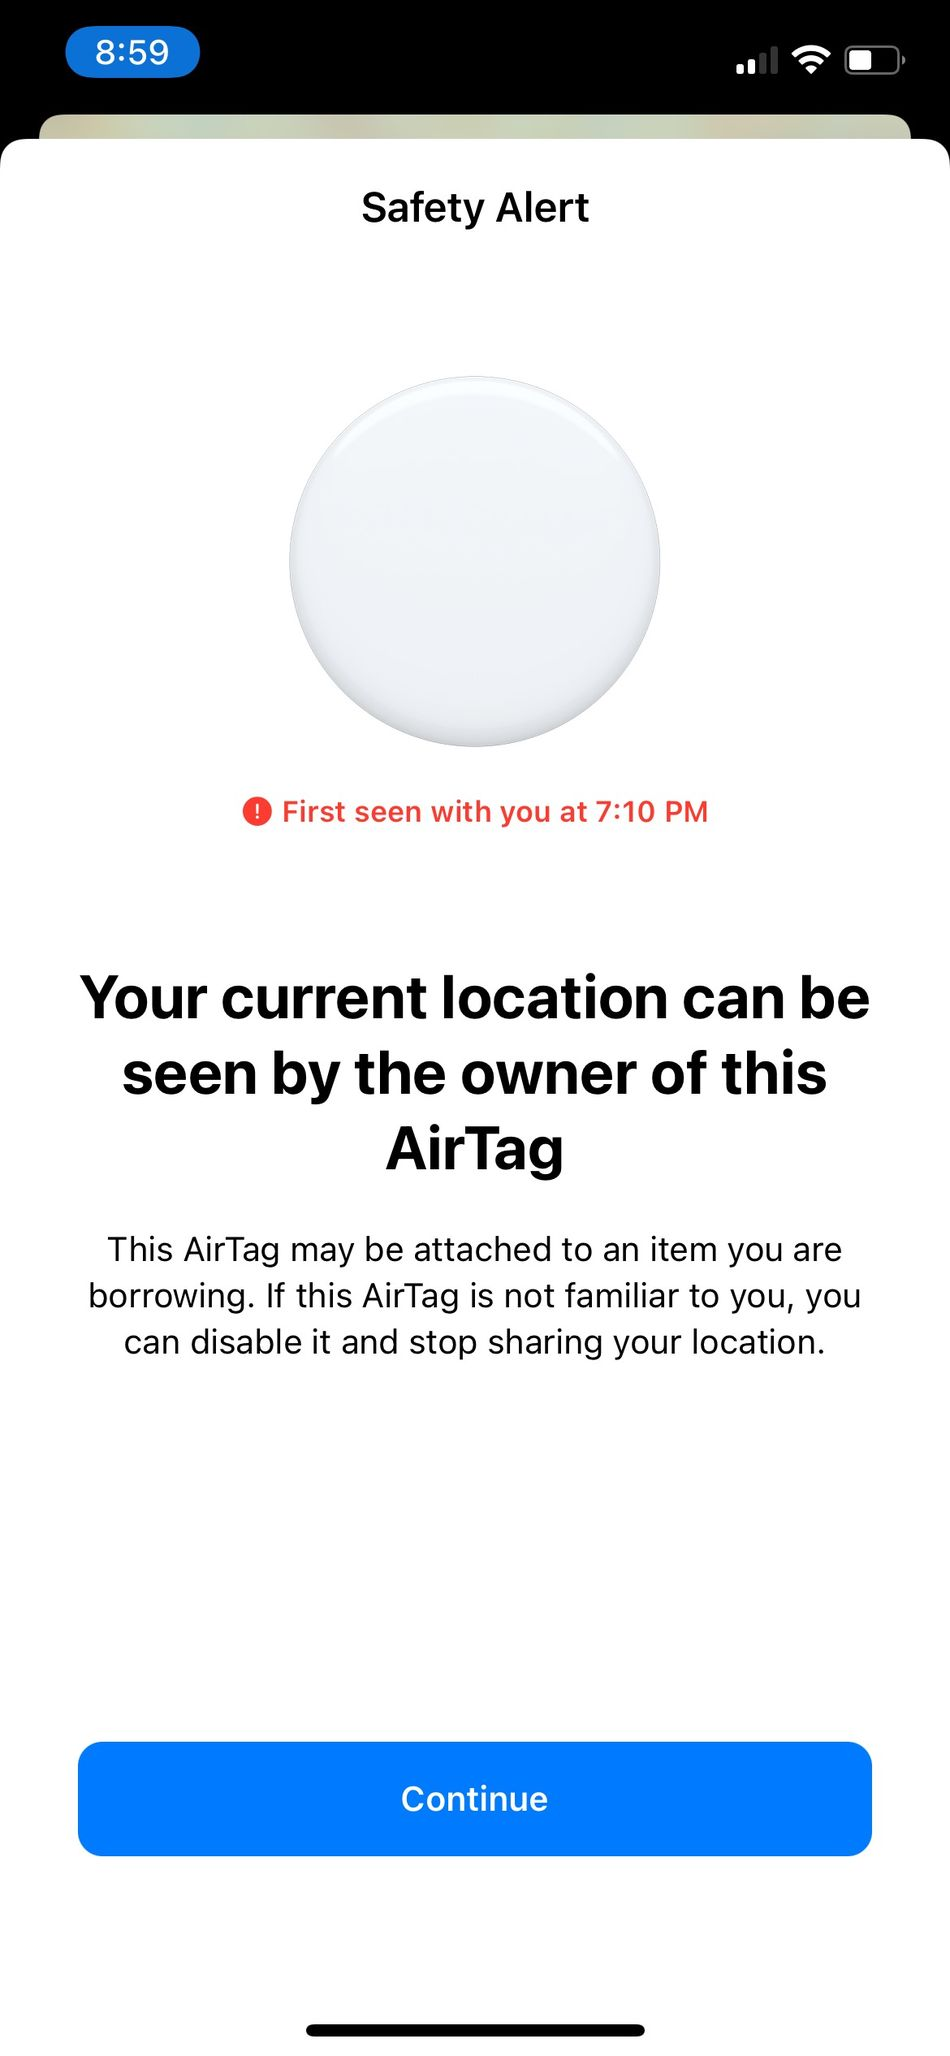 This is the safety alert you'll receive on your iPhone.